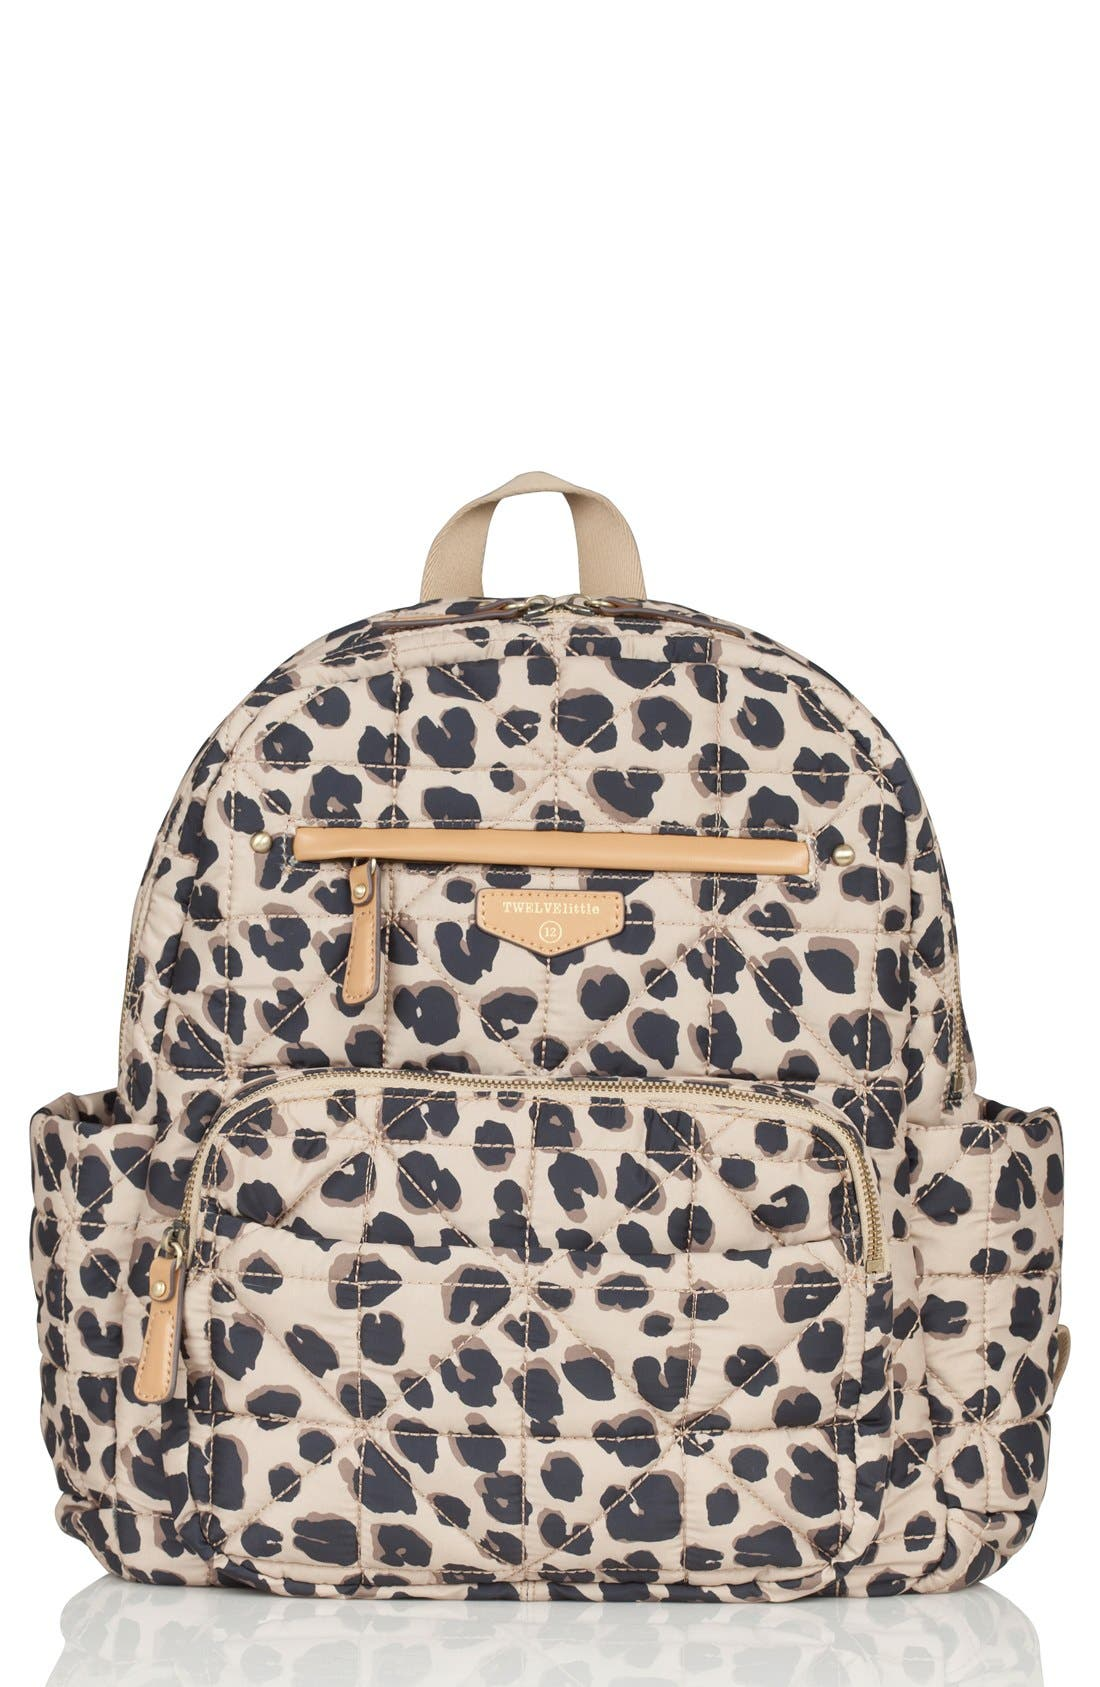 Quilted Water Resistant Nylon Diaper Backpack,                             Main thumbnail 1, color,                             LEOPARD PRINT